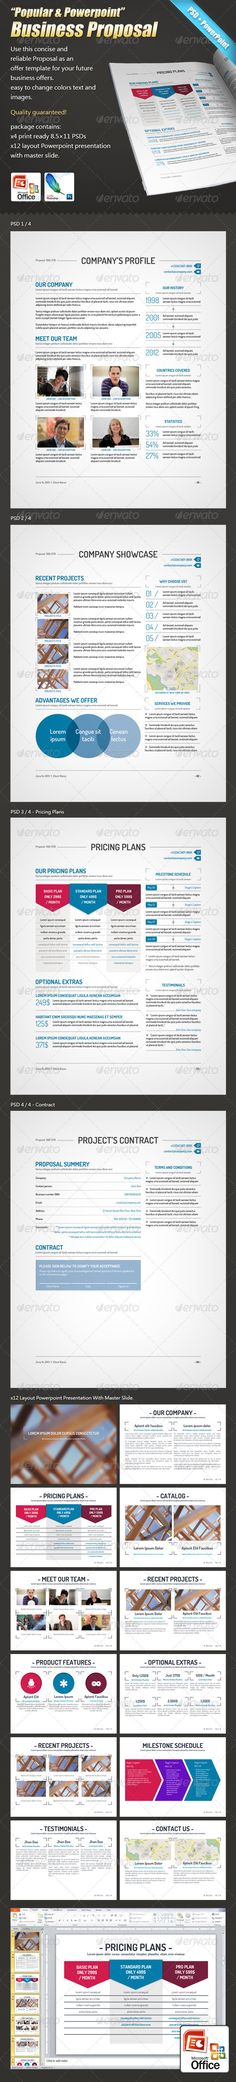 Real Estate Corporate Clean Project Proposal 16 pages professional - Sample Contract Proposal Template